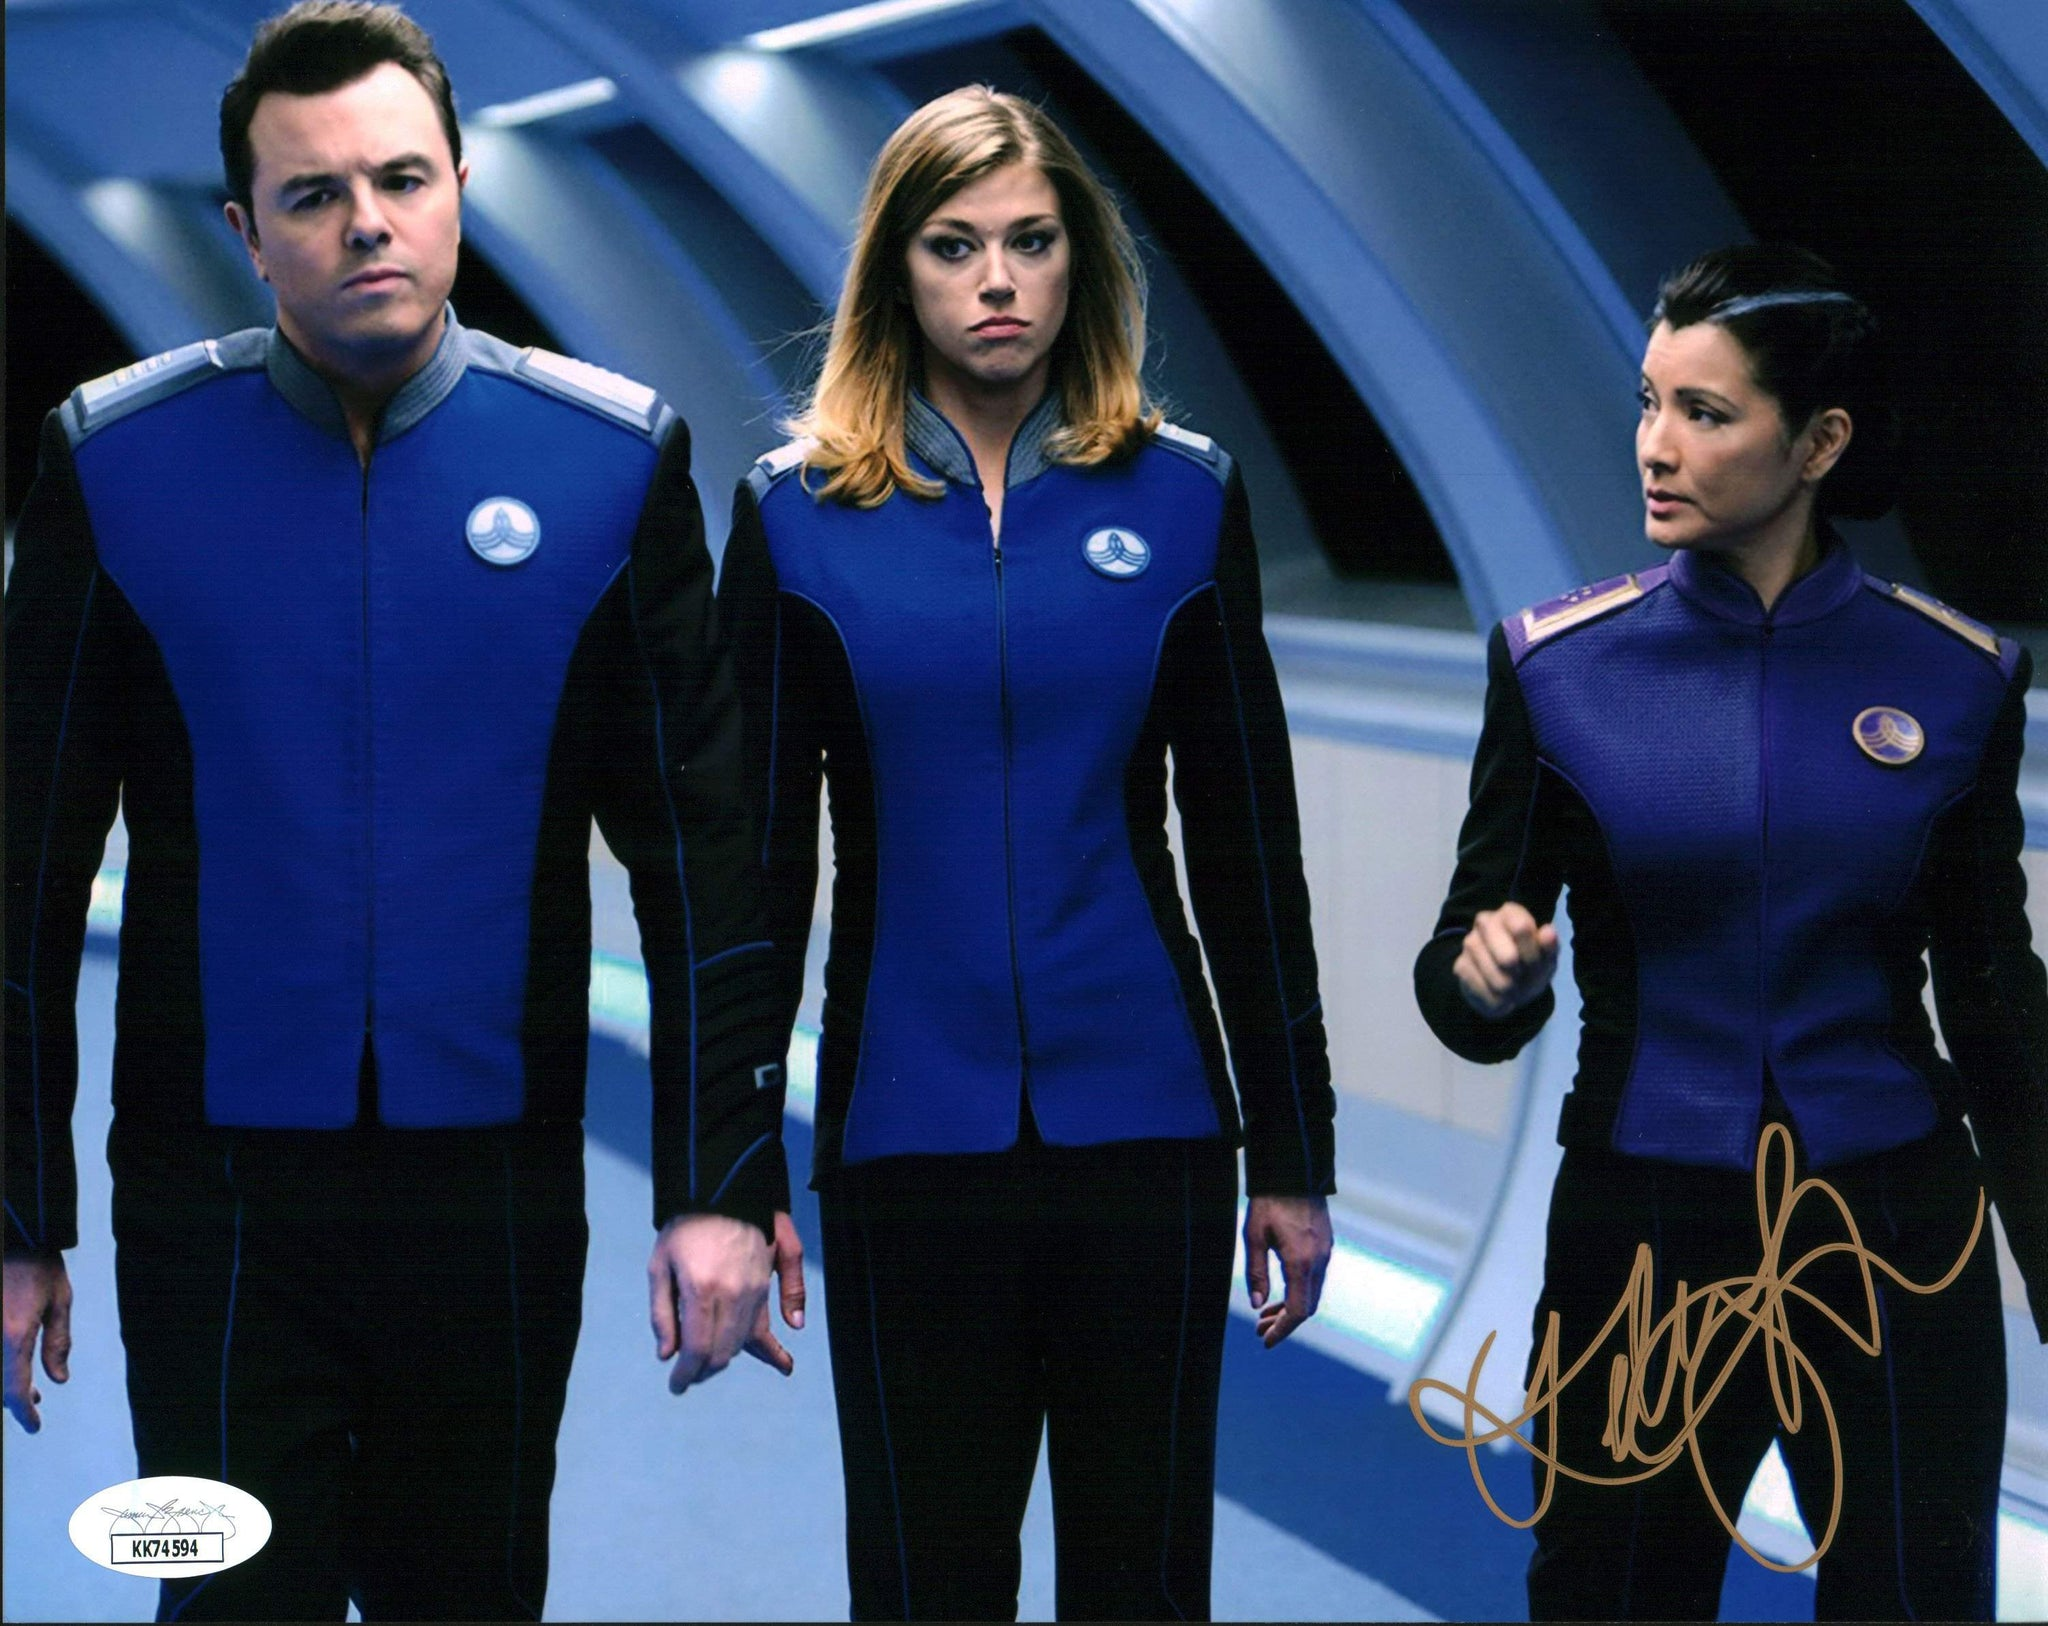 Kelly Hu The Orville 8x10 Photo Signed Autographed JSA Certified COA GalaxyCon